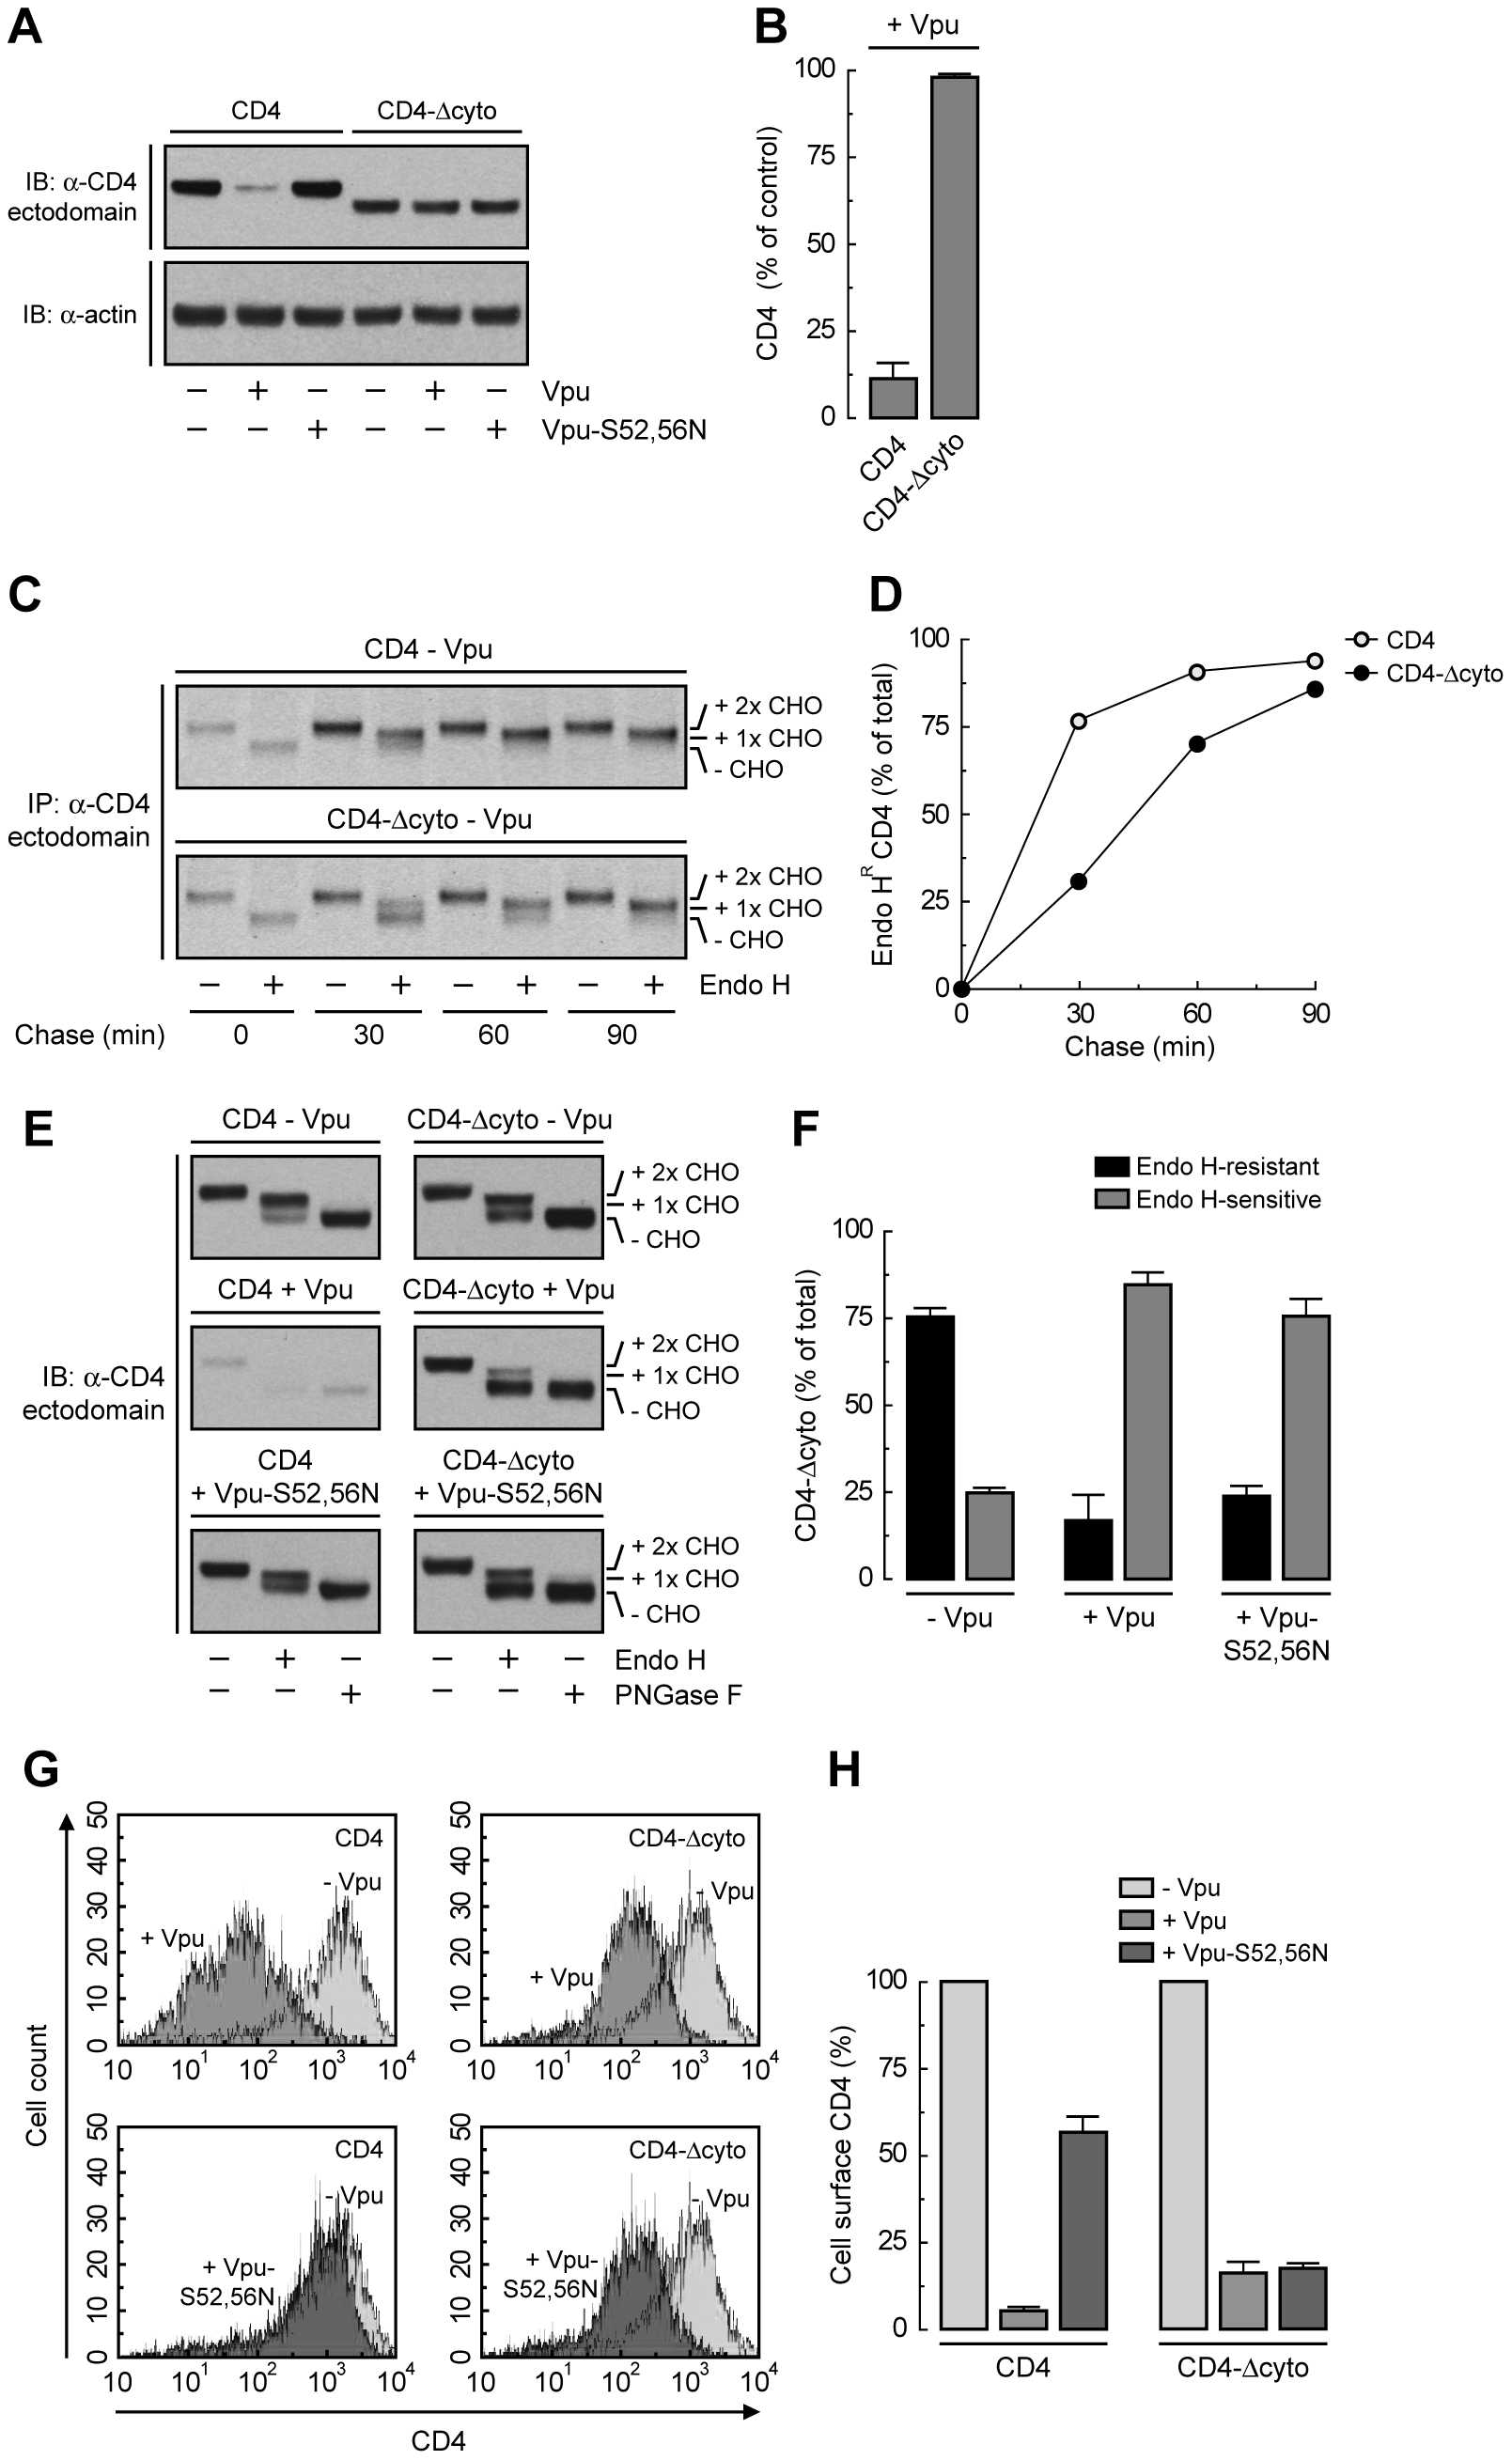 Deletion of CD4 cytosolic tail prevents degradation but not ER retention induced by Vpu.